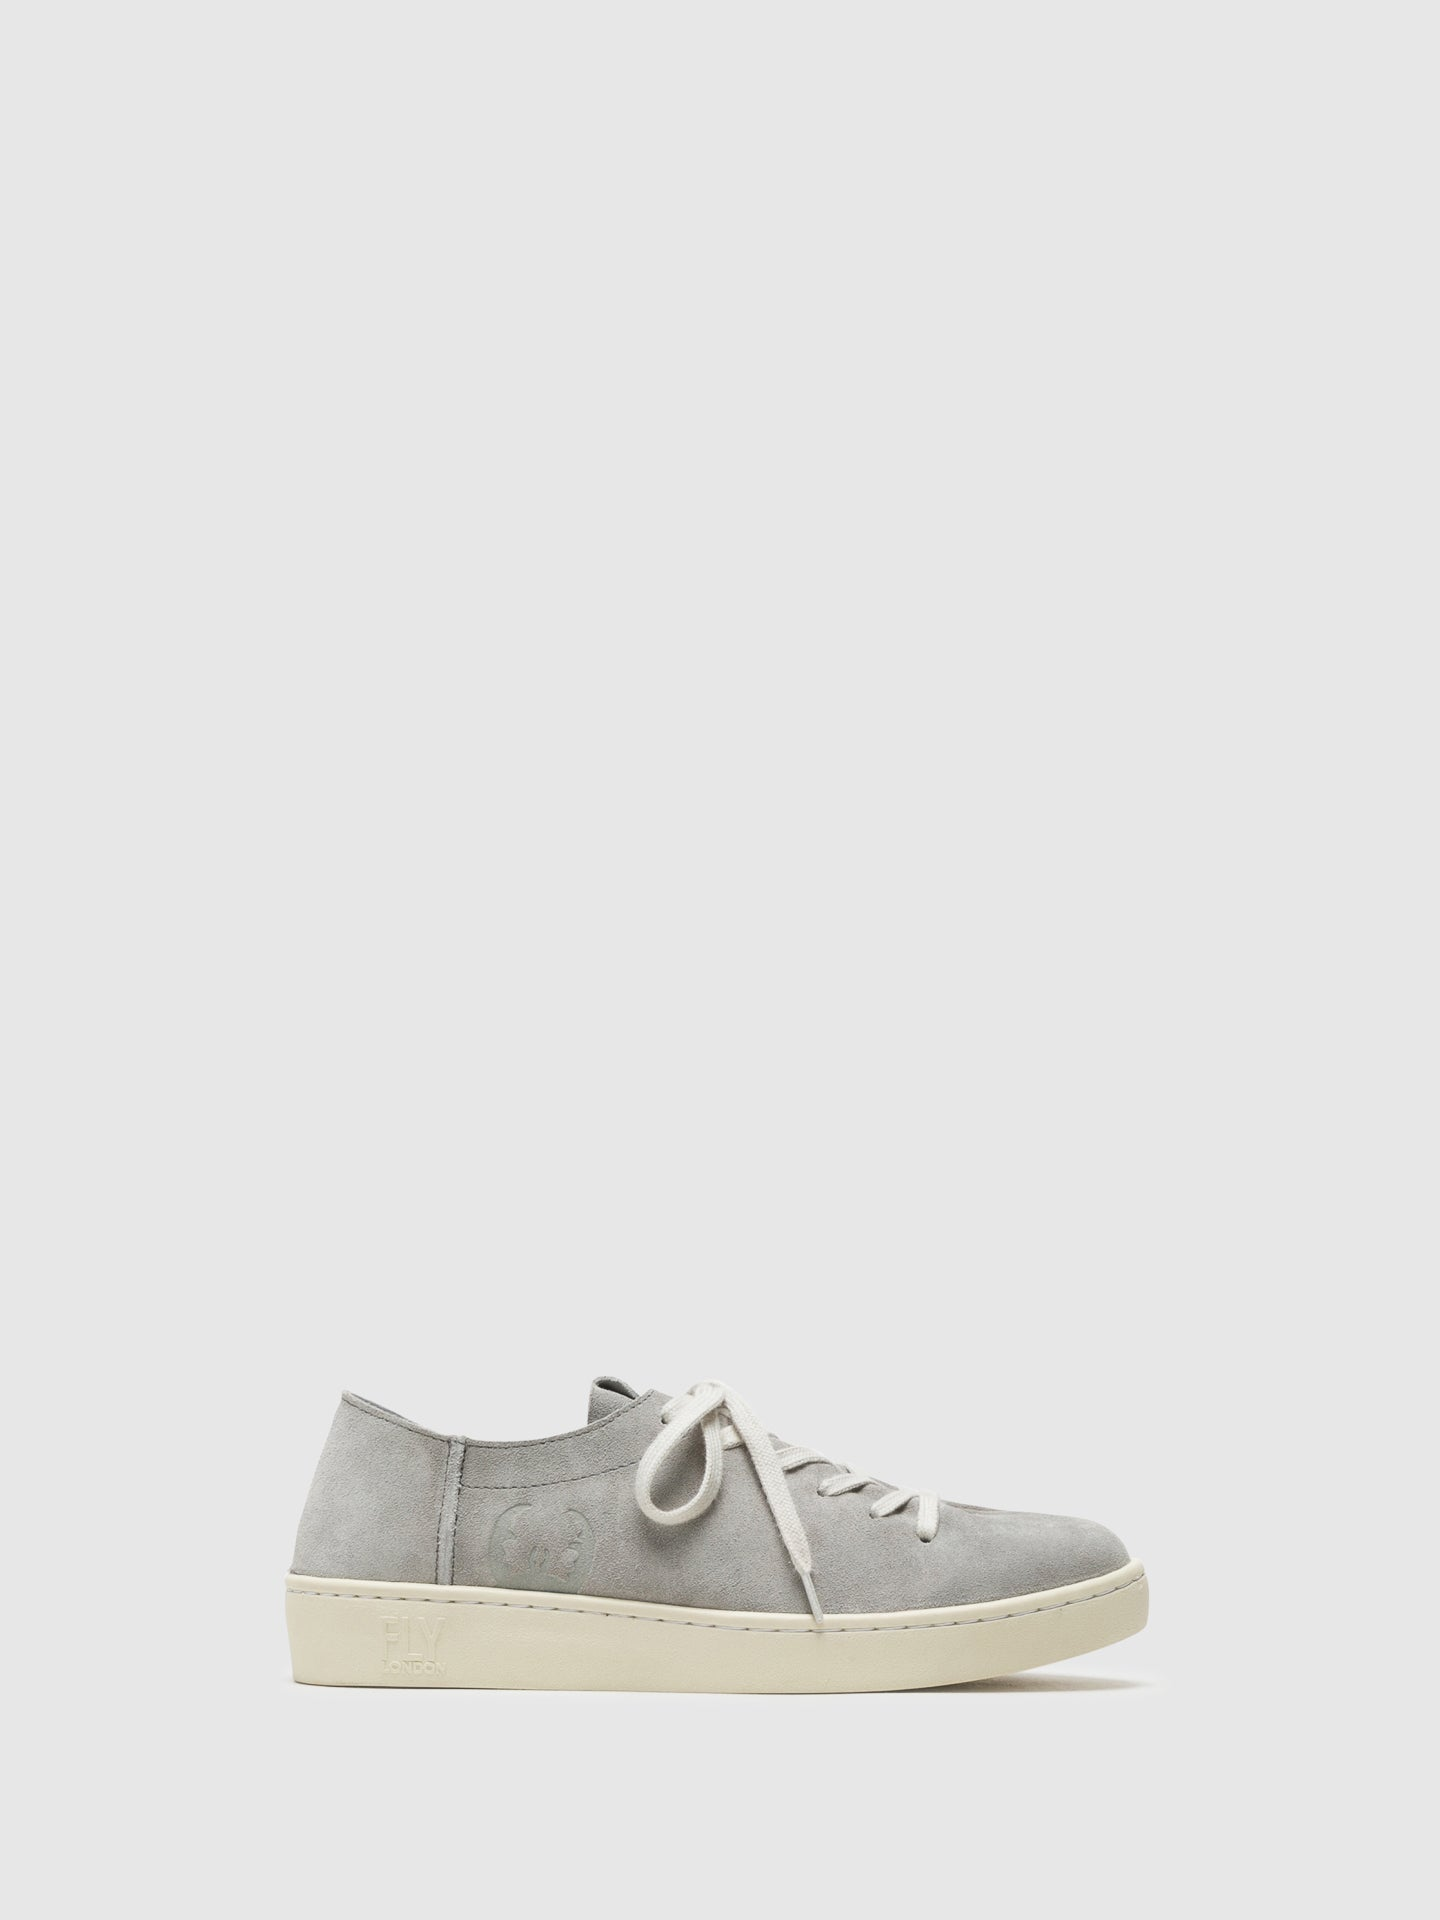 Fly London Zapatillas con Cordones en color Gris